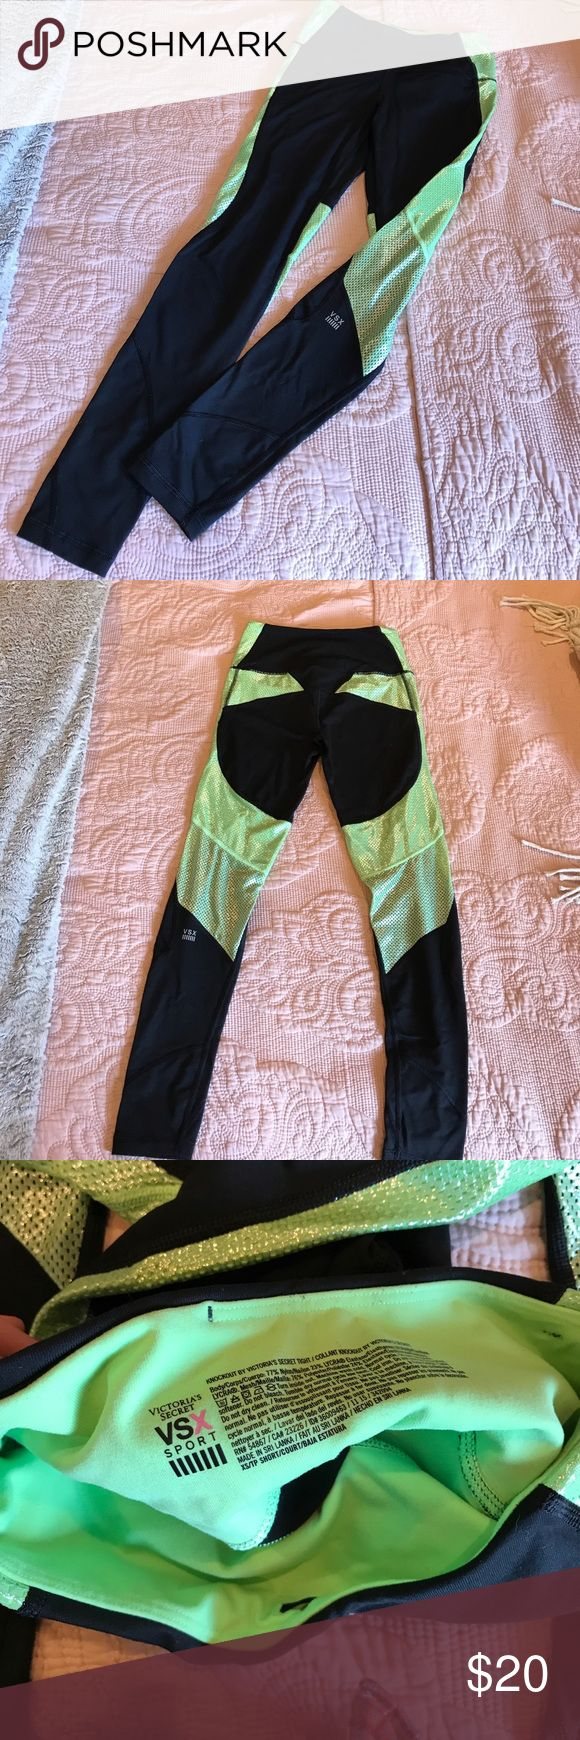 Victoria's Secret Sport workout pants Black and sheeny sparkly light green workout leggings. Definitely a mermaid vibe! I always got tons of compliments on these! Size xs and petite so a shorter fit. I'm 5'3 and they came right to my ankles. In perfect condition! Only worn twice. Victoria's Secret Pants Track Pants & Joggers